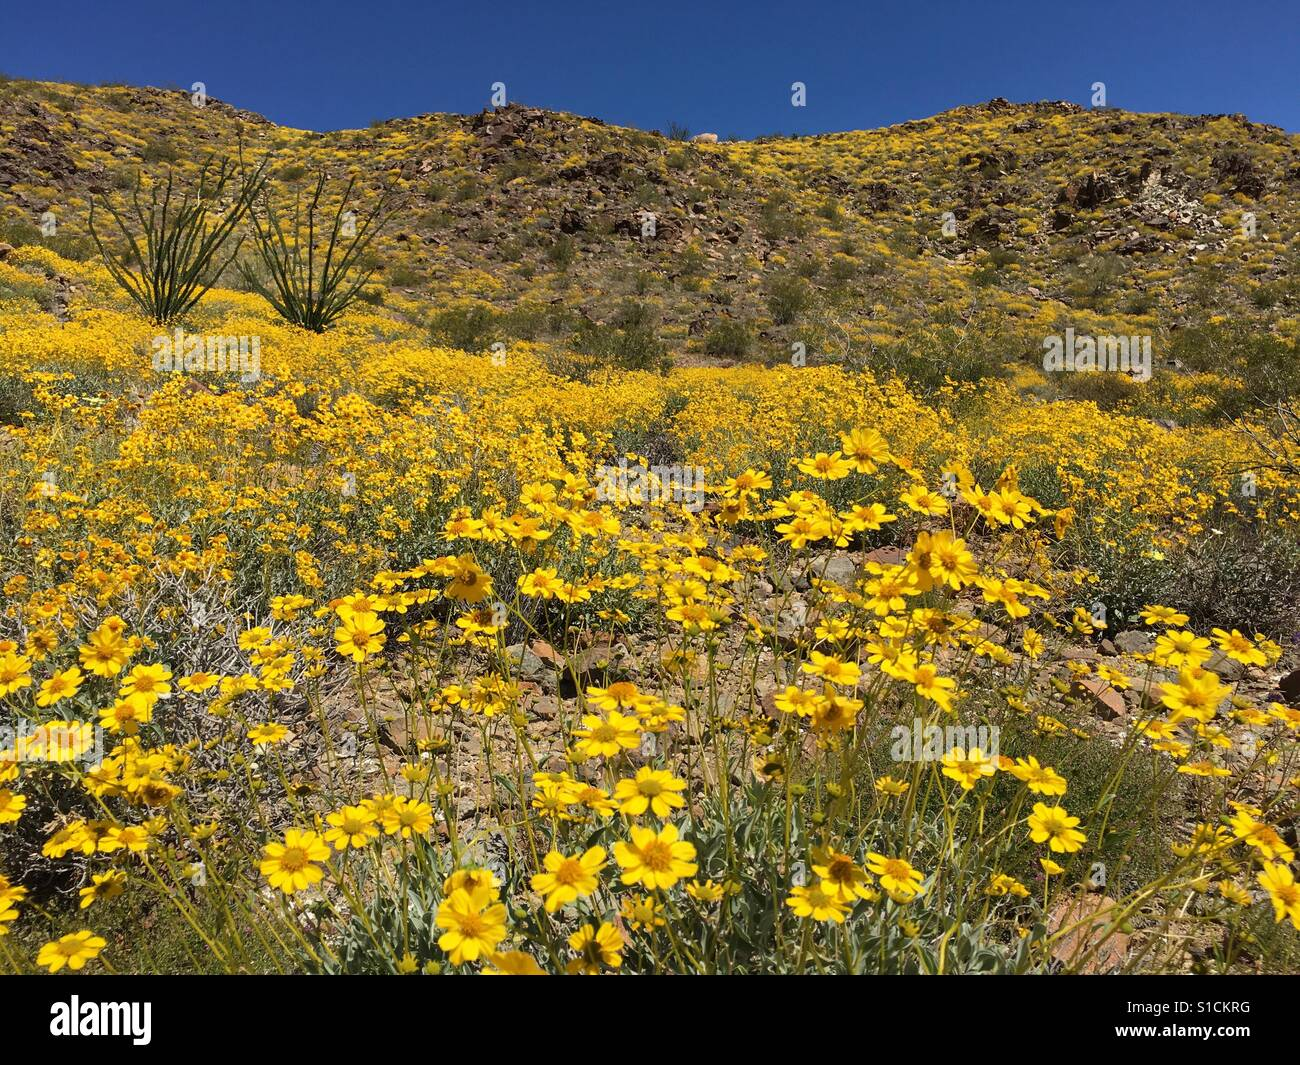 Wildflower 'super bloom' after rare winter rains at Joshua Tree National Park in Southern California. 2nd - Stock Image